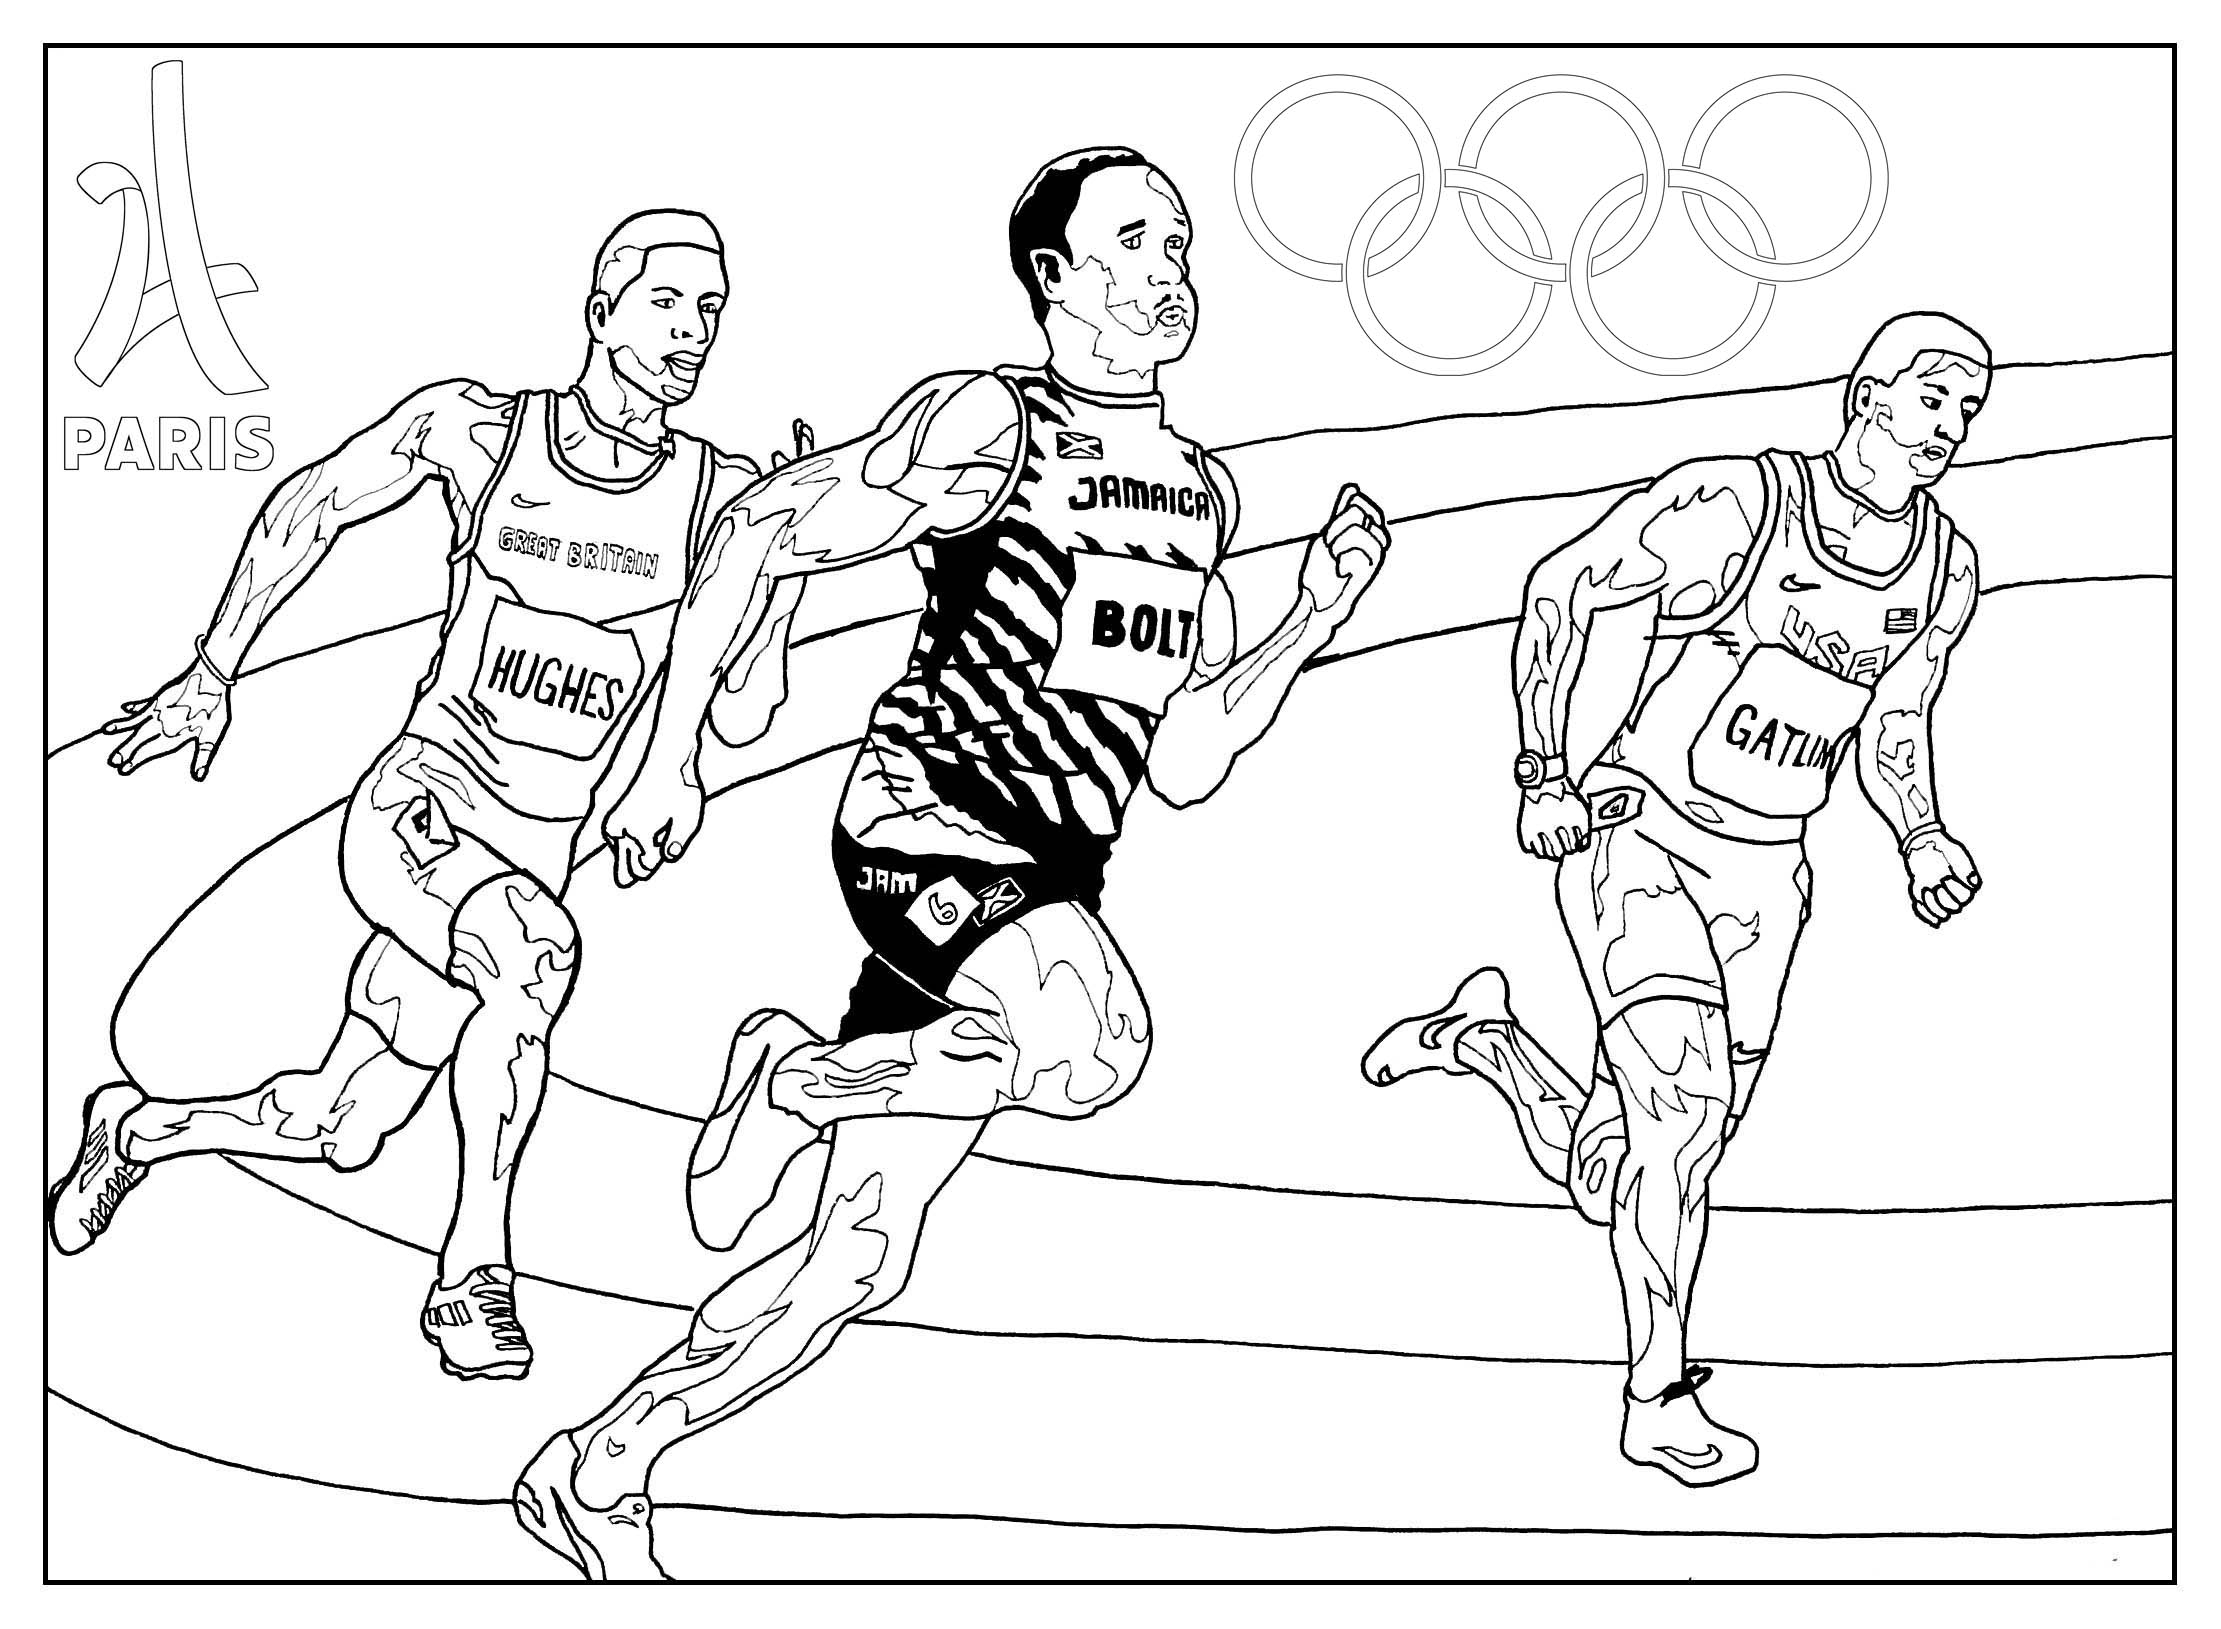 Games athletics Paris 2024 Olympic & Sport Adult Coloring Pages Collection Of Olympic Swimming Coloring Pages Best Coloring Pages Games Image Printable